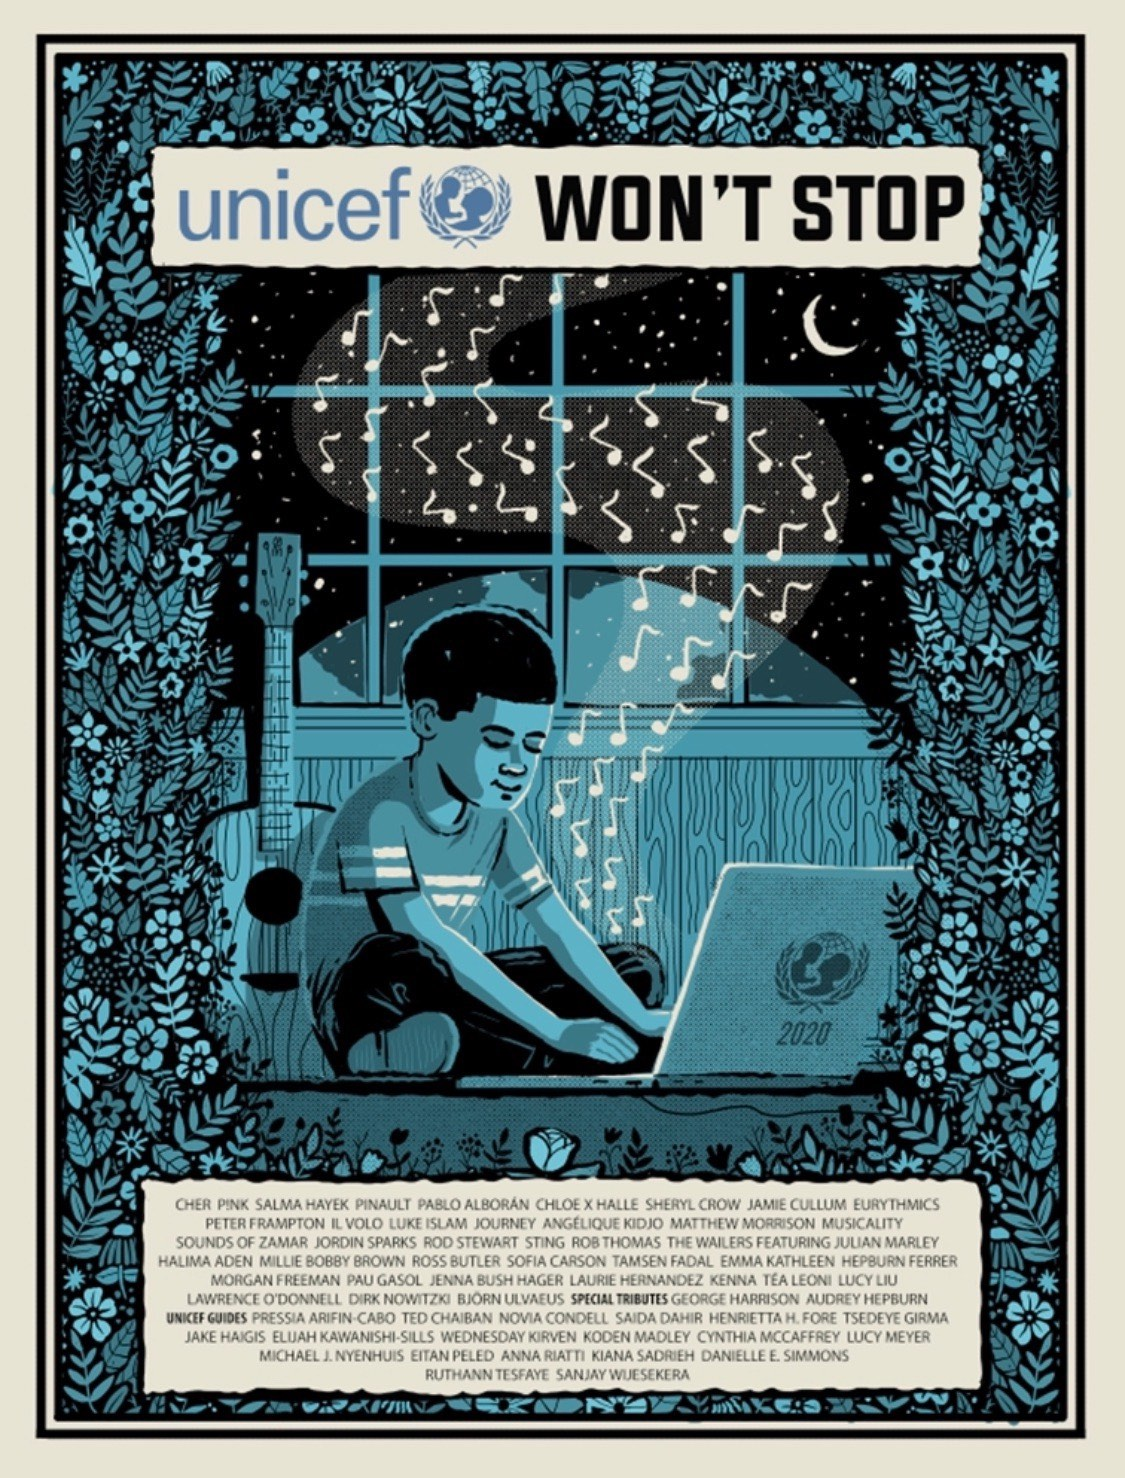 UNICEF Won't Stop Poster